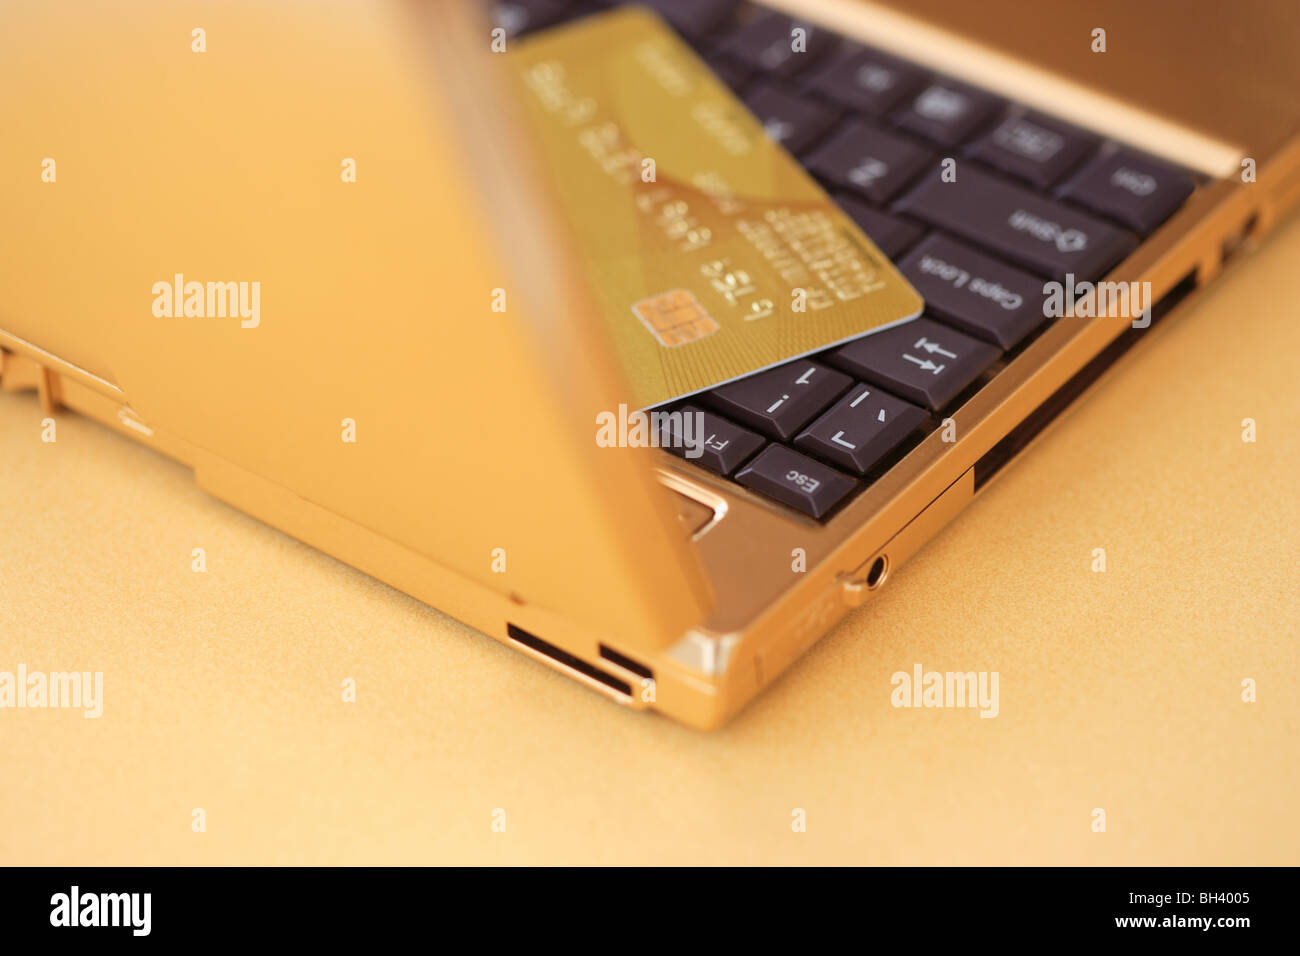 A golden laptop computer and a golden credit card on a golden desk - Stock Image